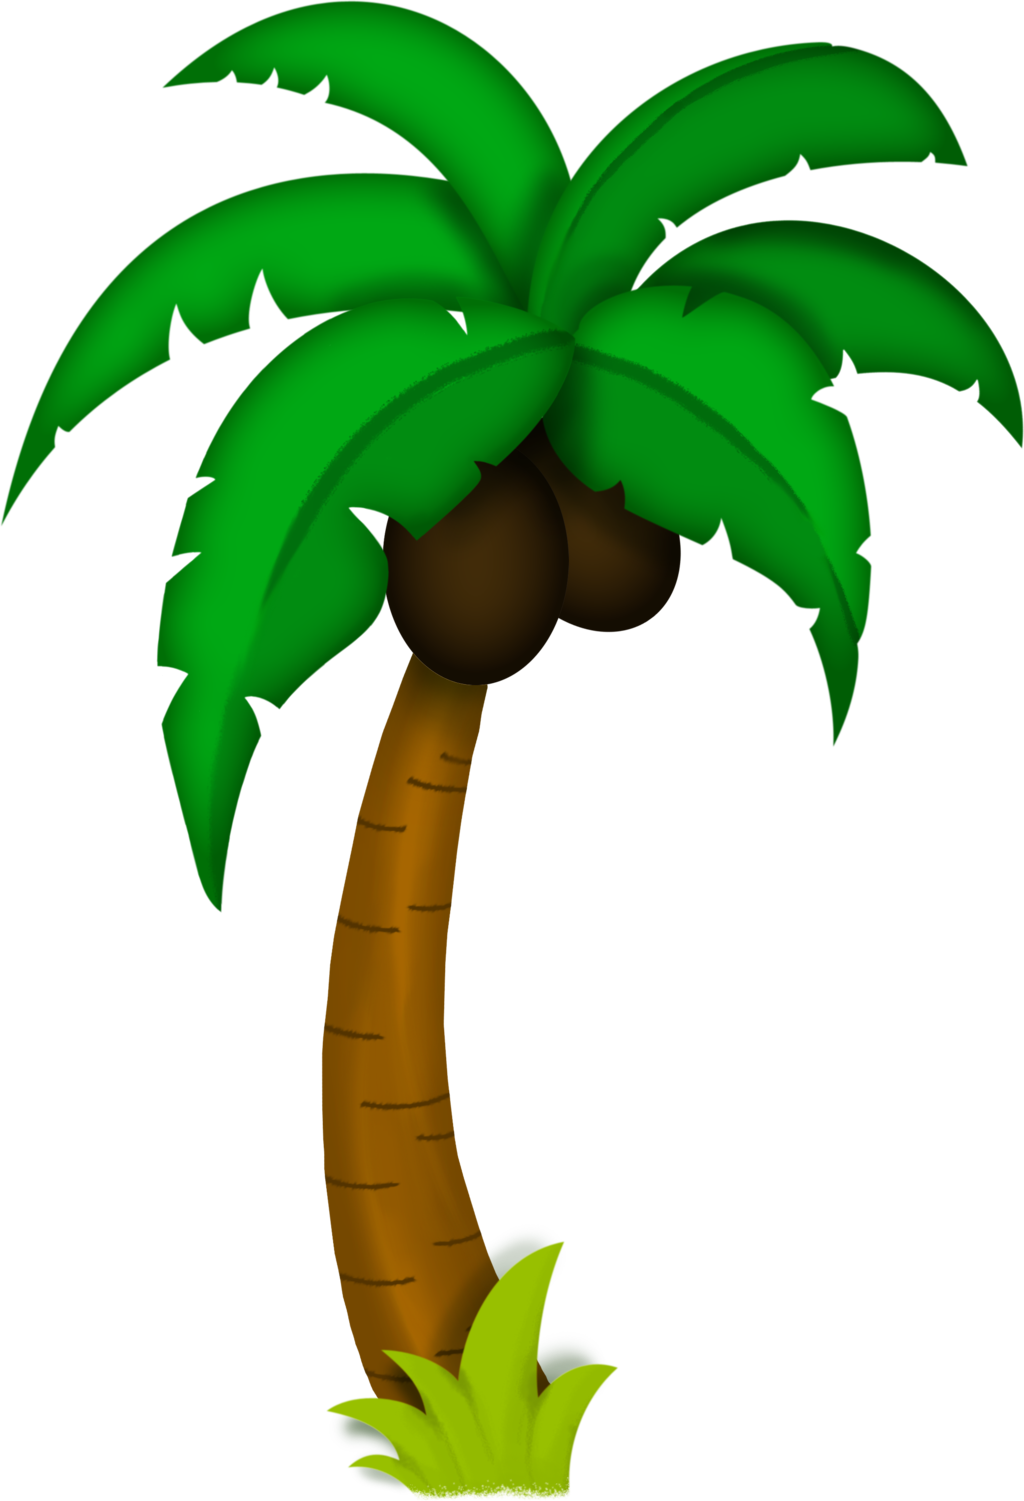 Palm tree drawing png. For game by hrtddy